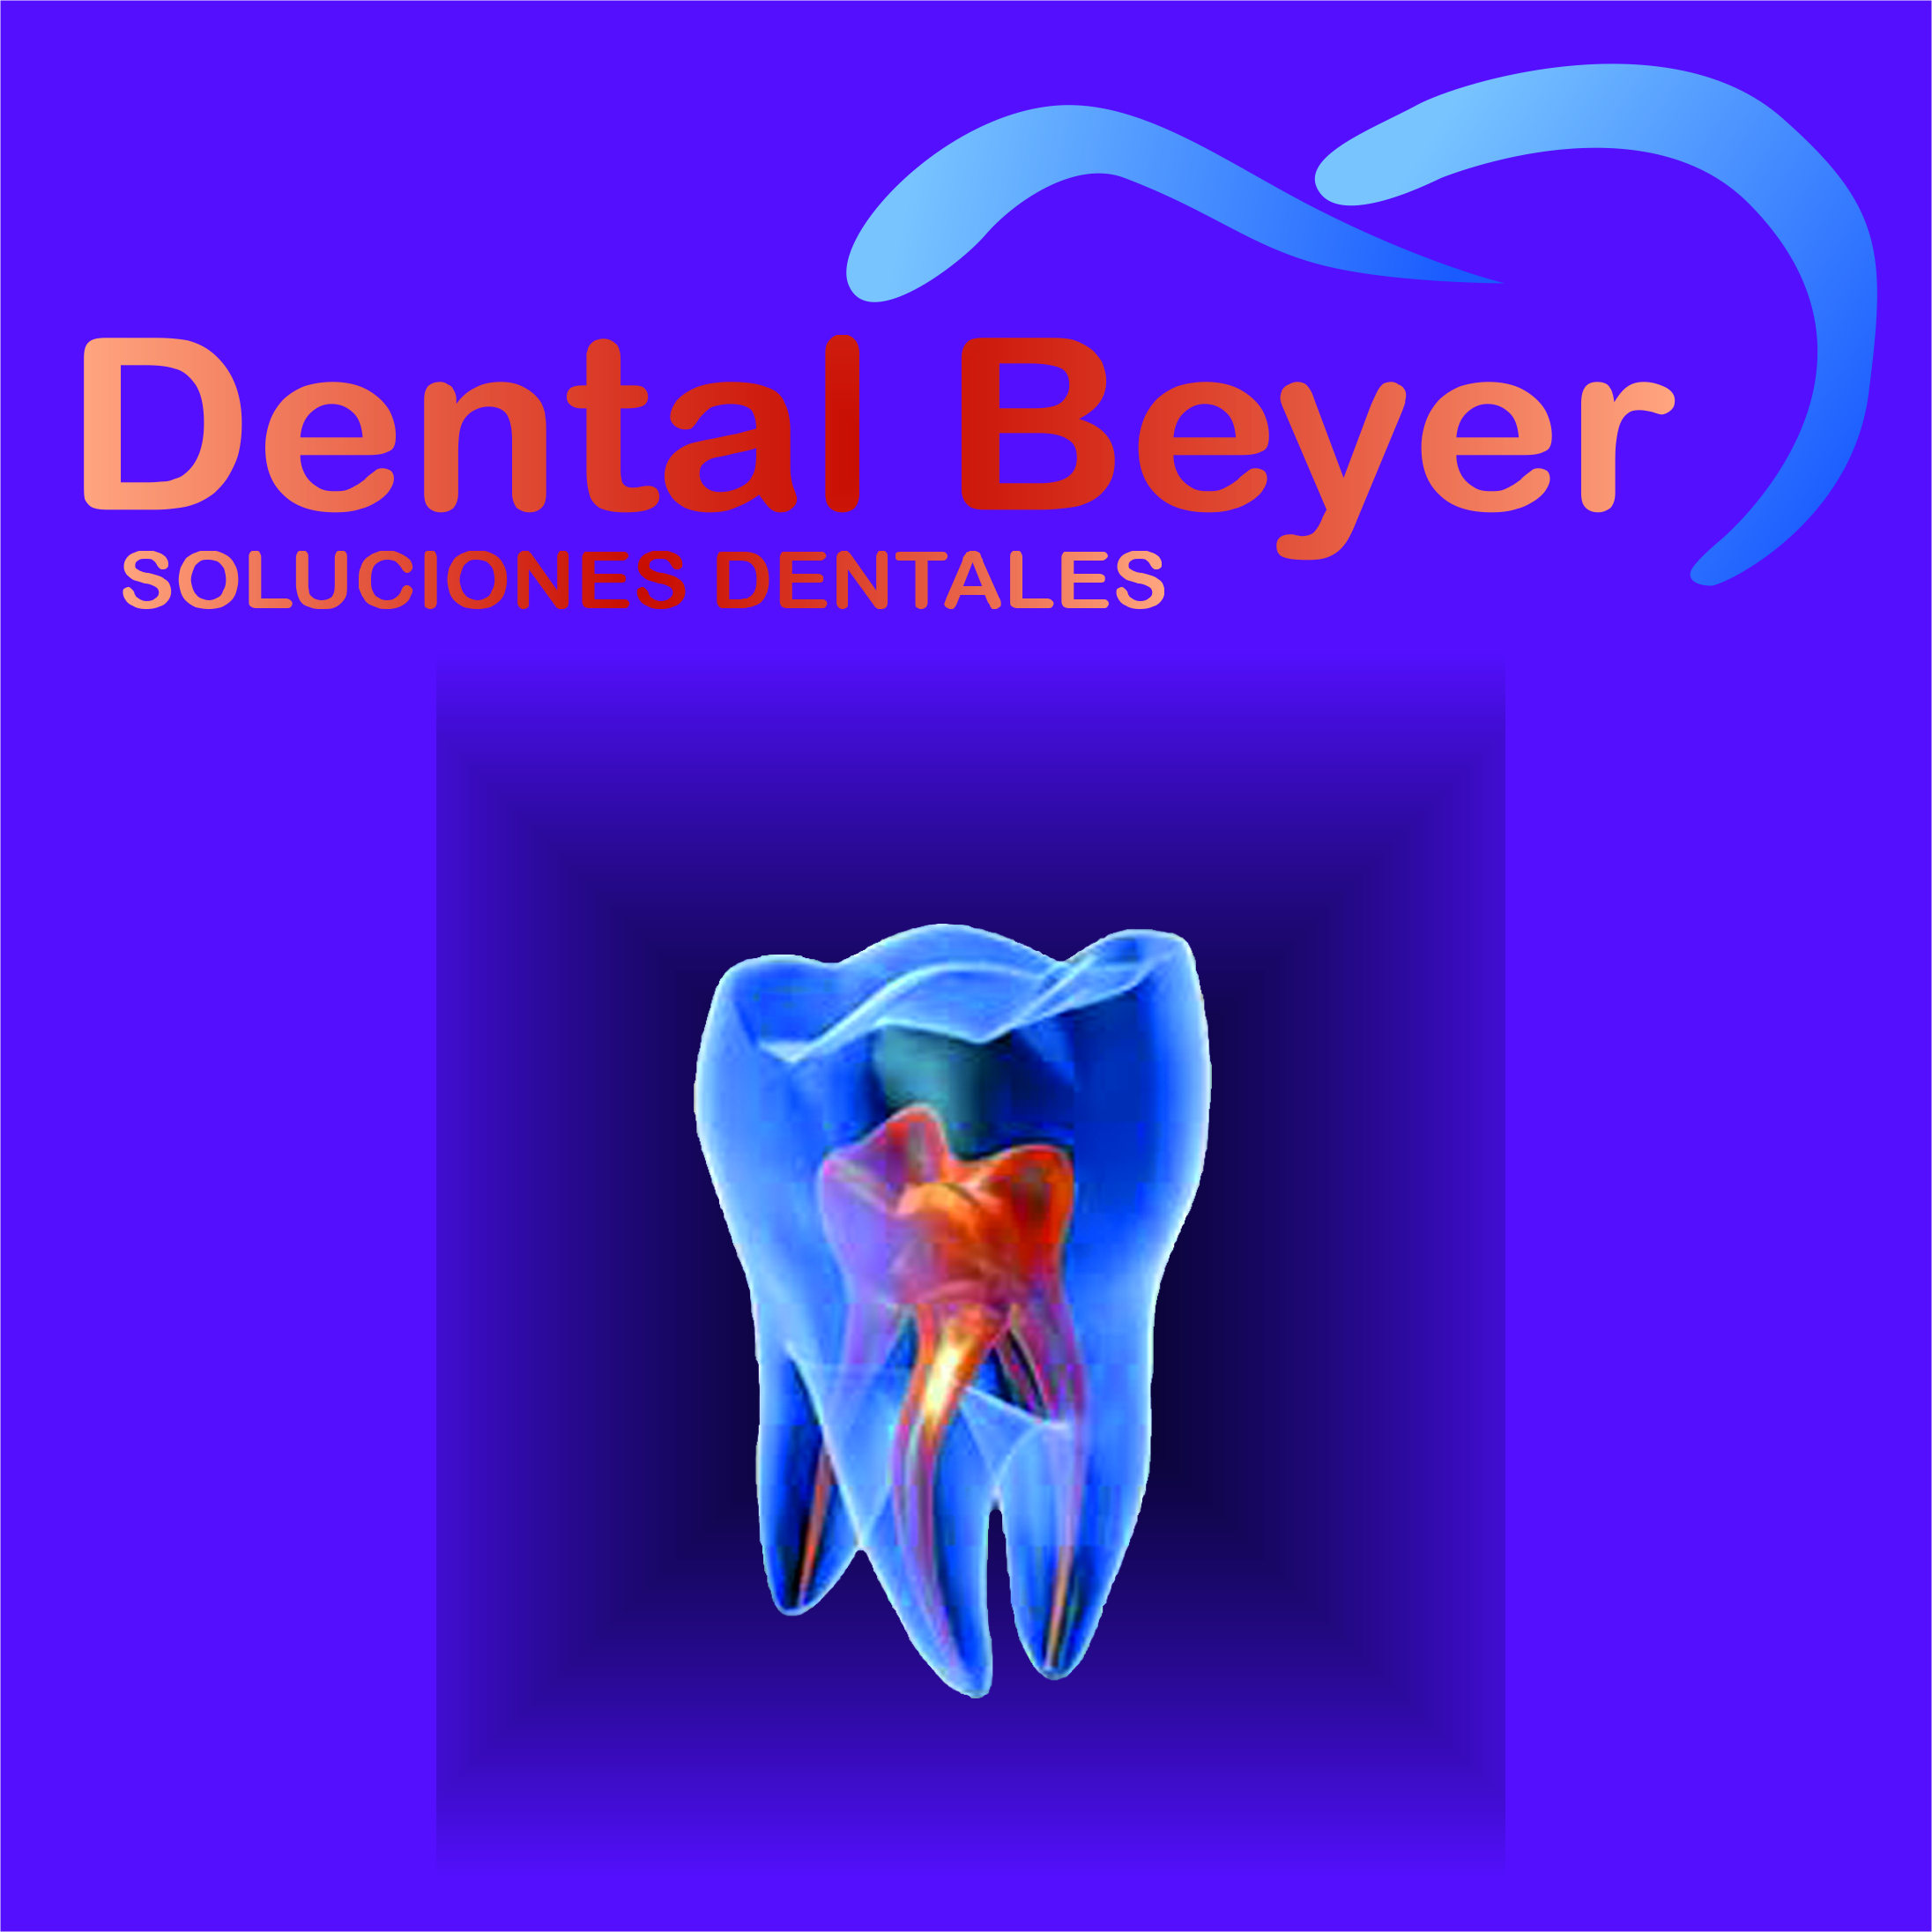 Clínica Dental Beyer